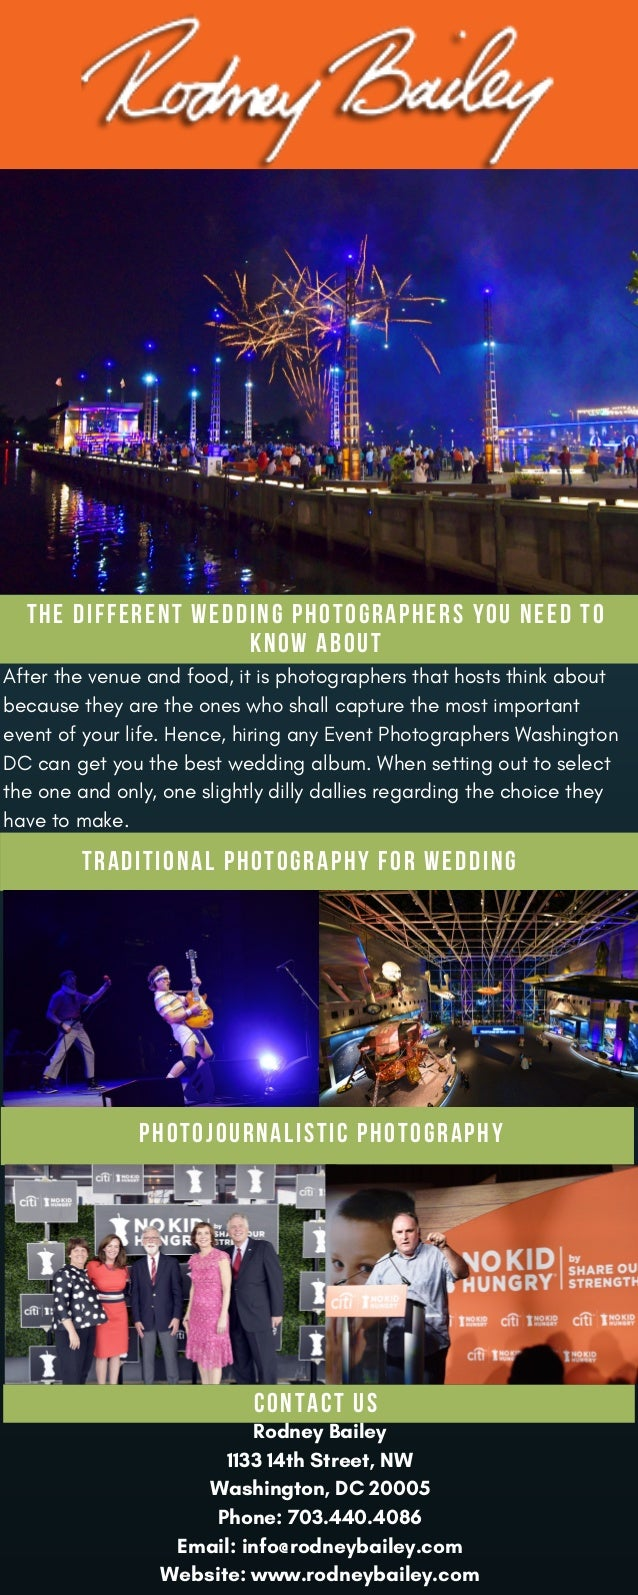 After the venue and food, it is photographers that hosts think about because they are the ones who shall capture the most ...